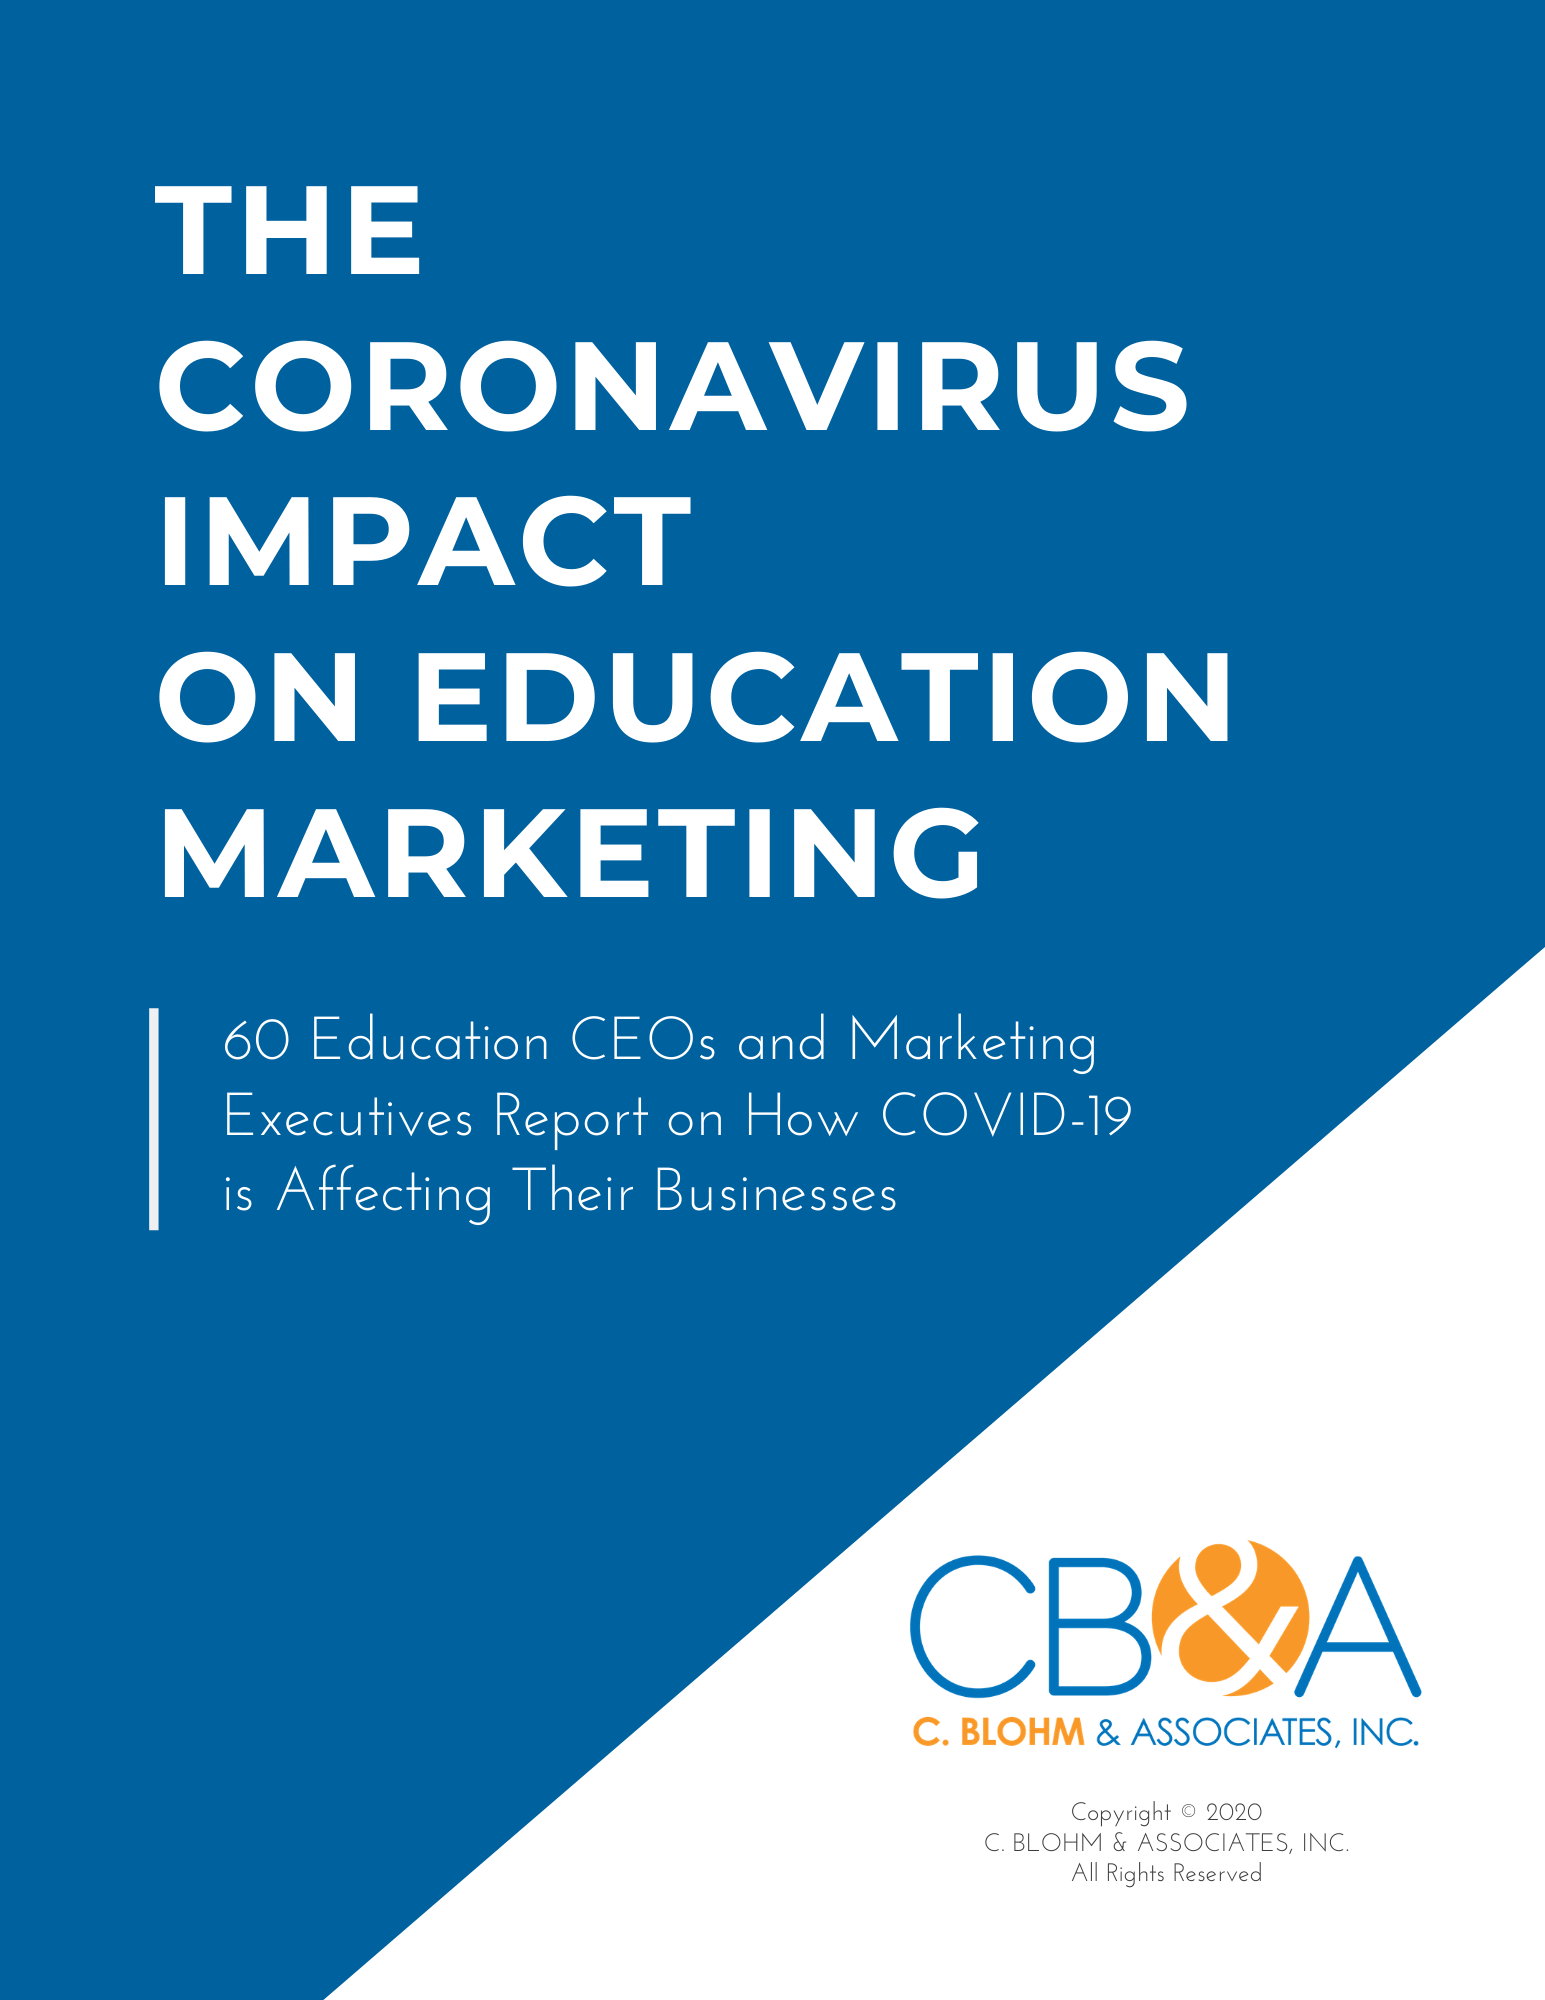 CB&A_Coronavirus Impact on Education Marketing_April 2020